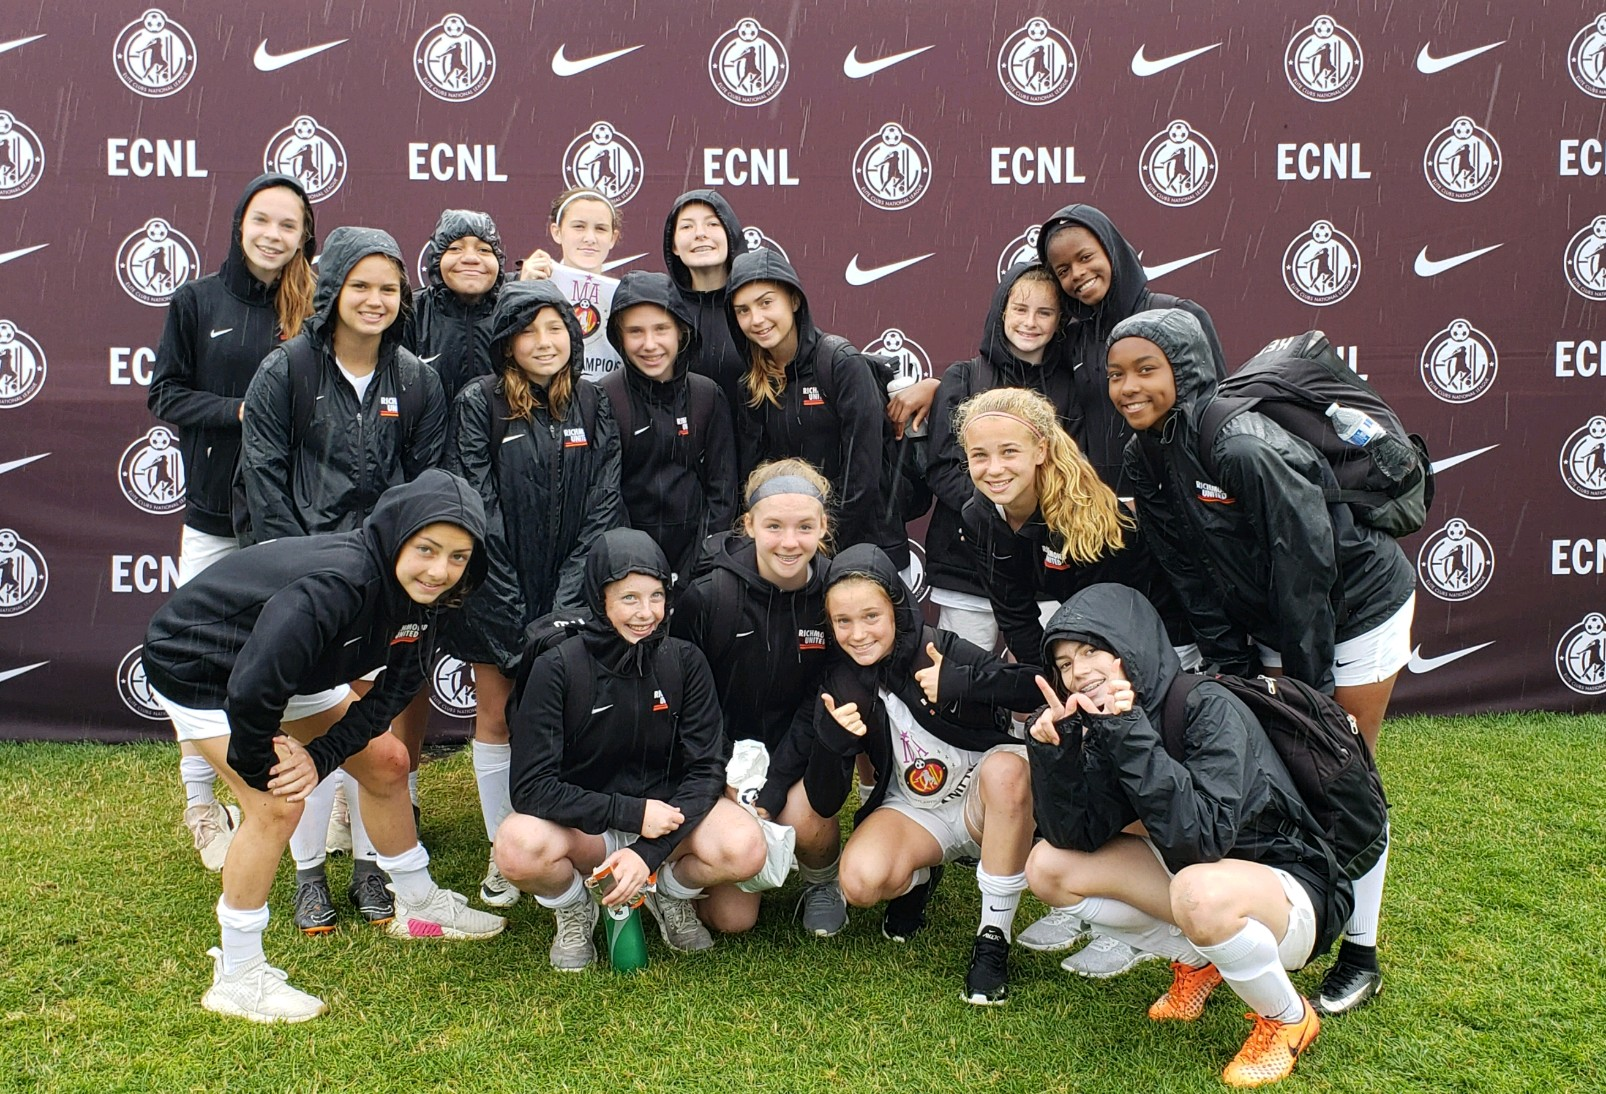 Richmond United ECNL | 2018-2019 Rosters